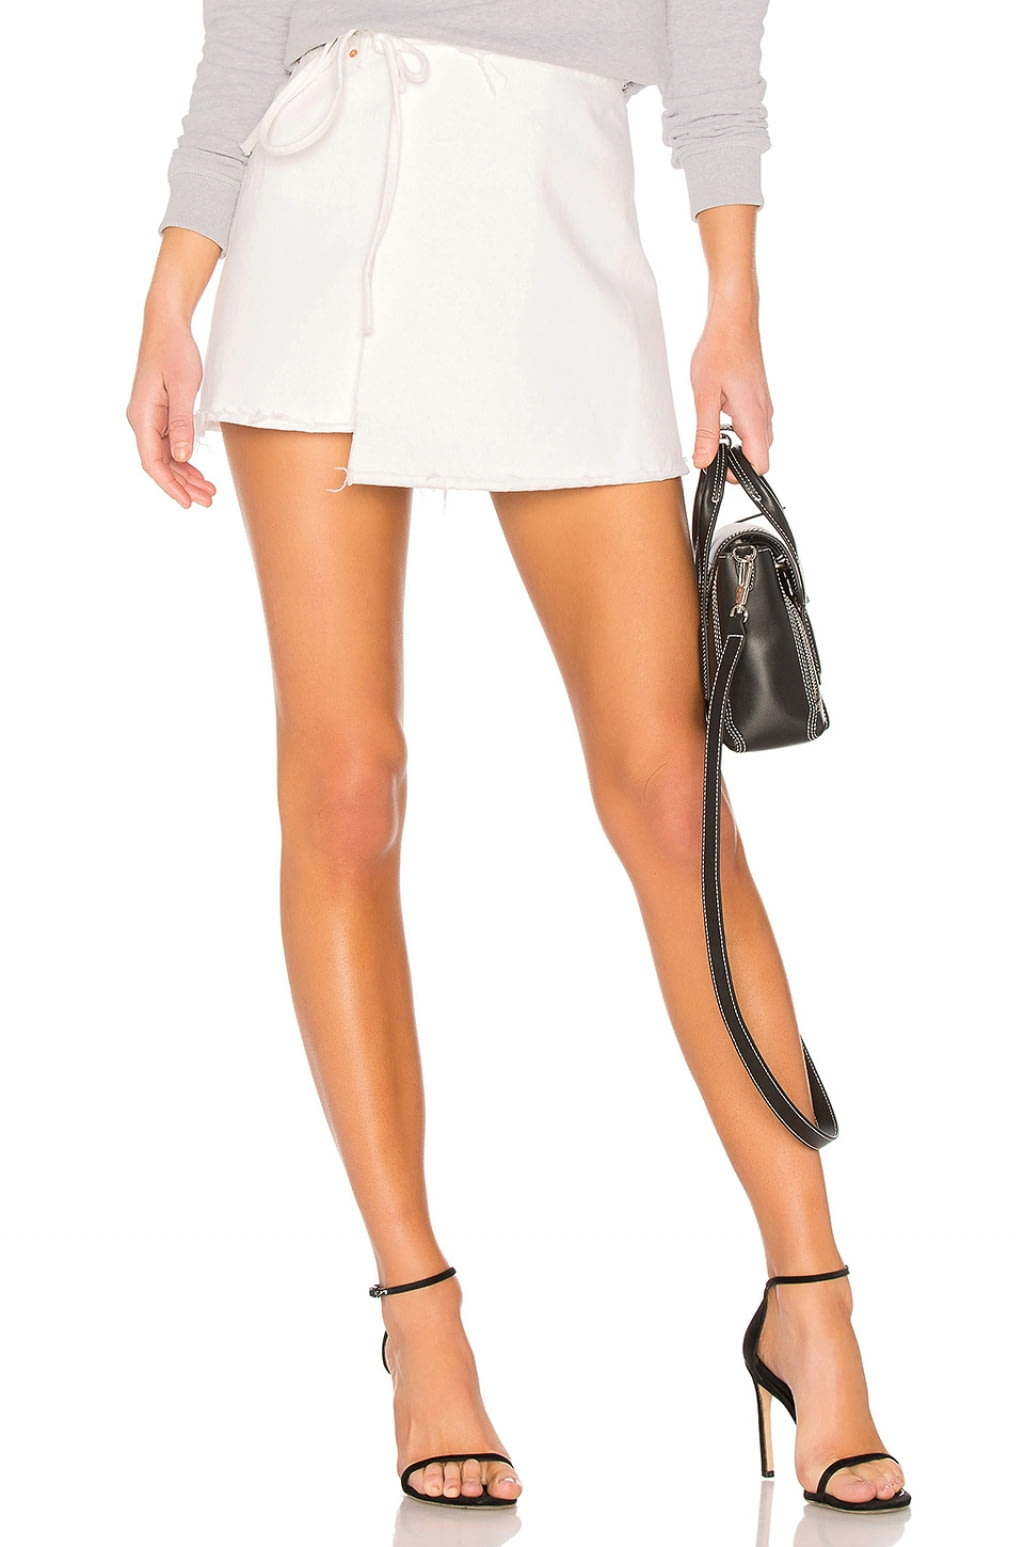 $103 - Reconstructed Wrap Skirt